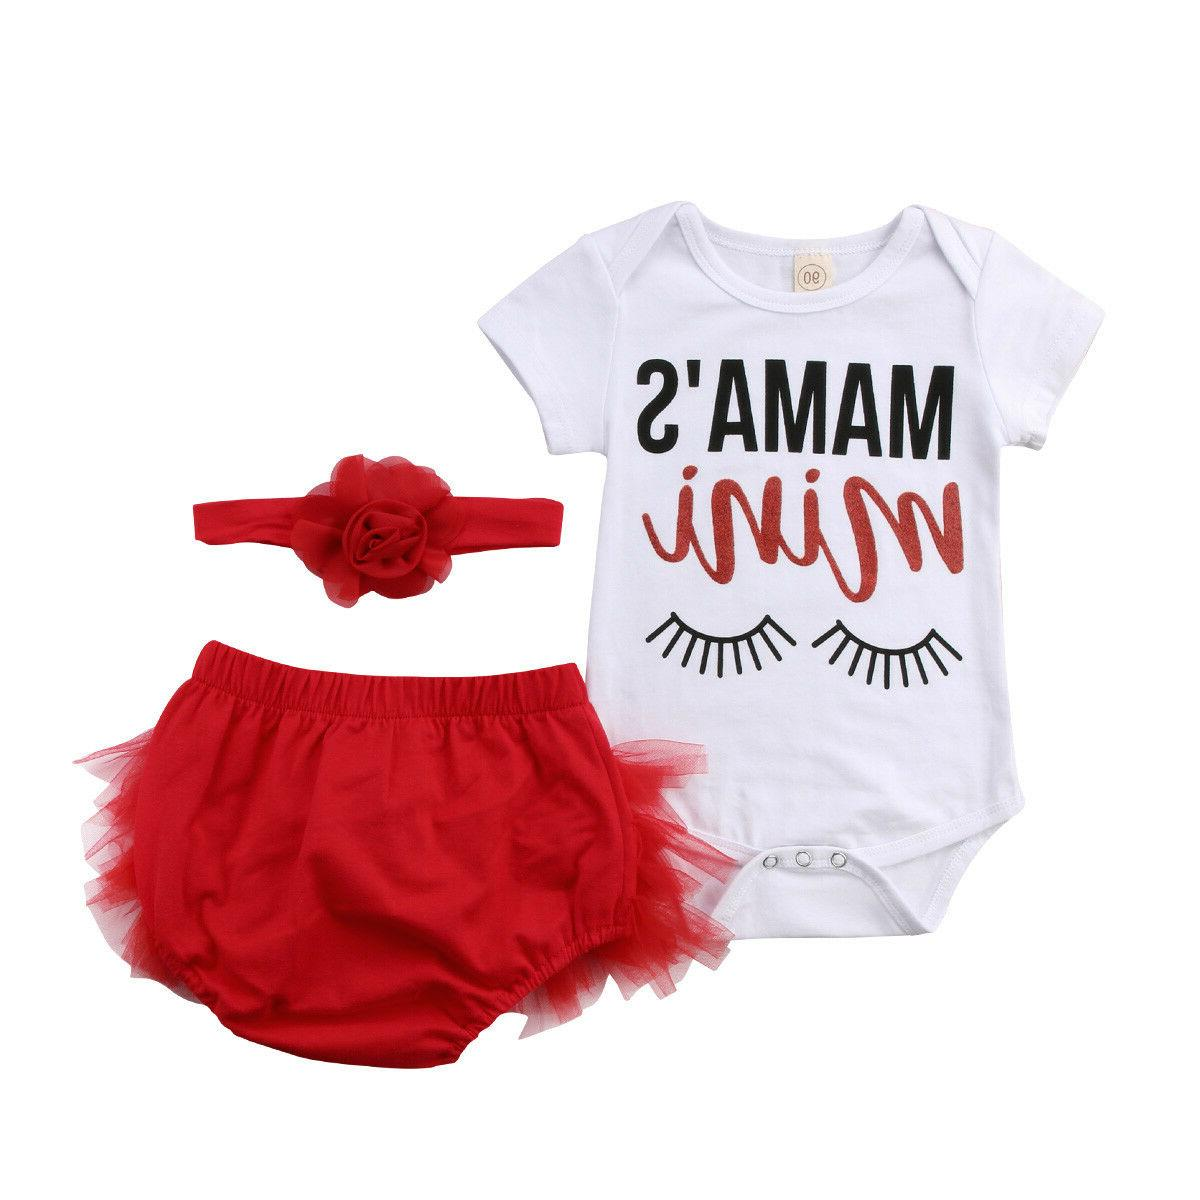 US STOCK 3pcs Infant Baby Girl Outfits Set